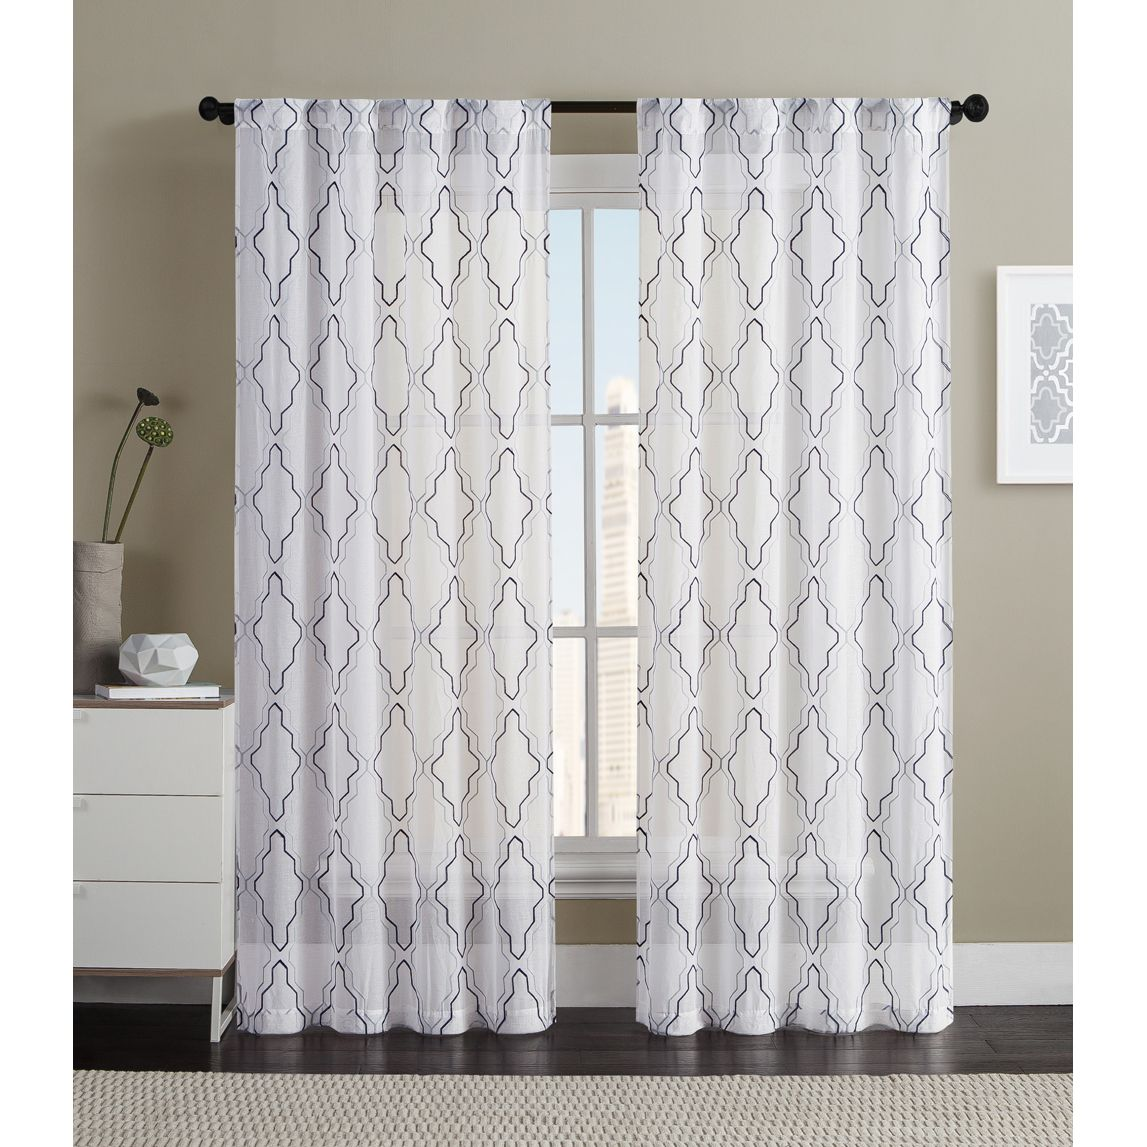 Overstock Com Online Shopping Bedding Furniture Electronics Jewelry Clothing More Sheer Curtain Panels Geometric Curtains Vcny